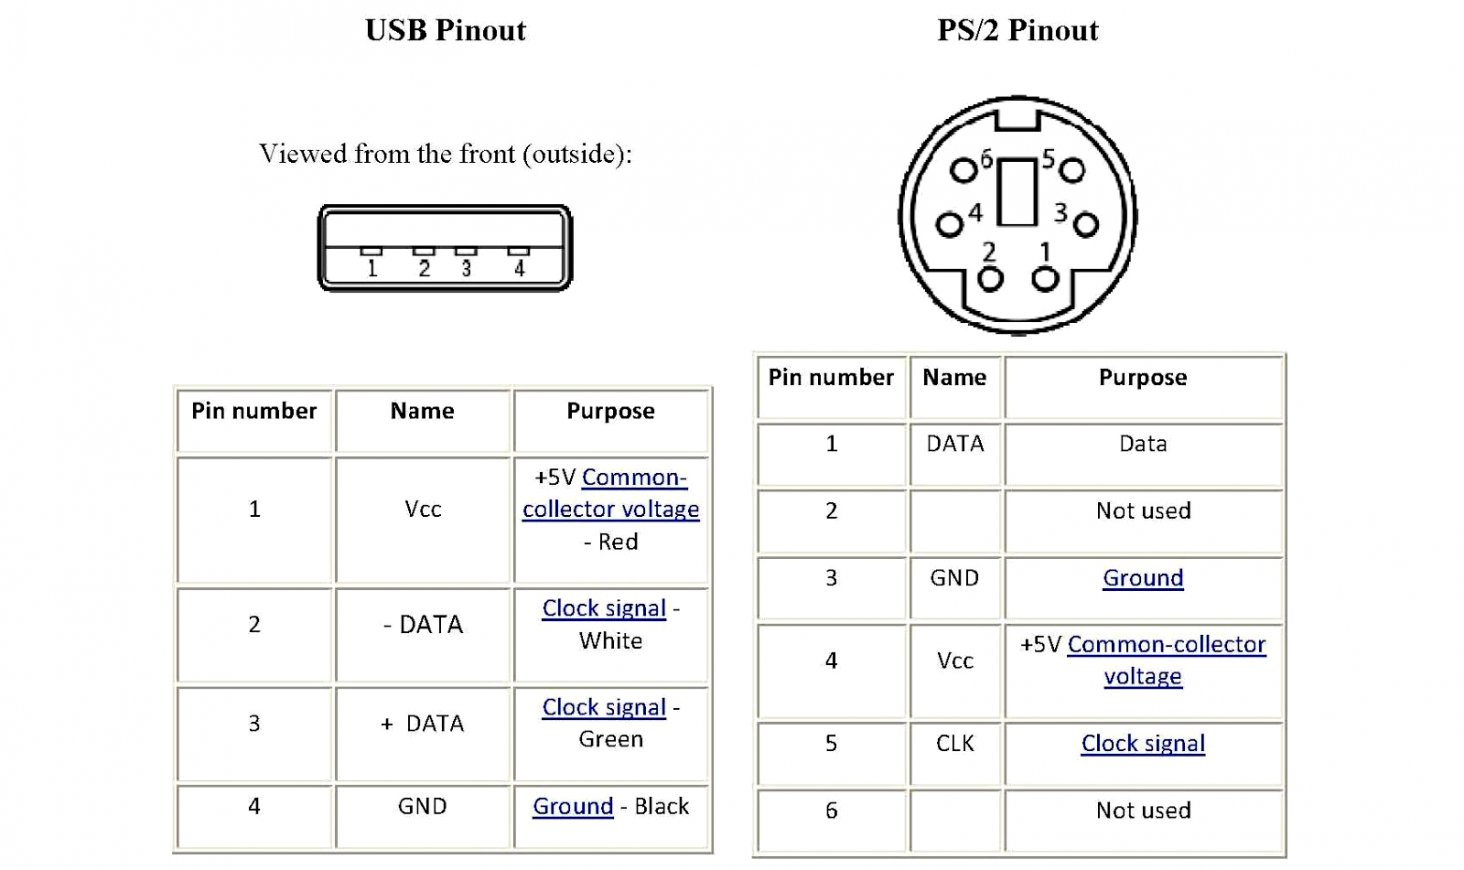 Usb To Ps 2 Mouse Wiring Diagram | Wiring Diagram - Usb Keyboard Tops2 Adapter Wiring Diagram